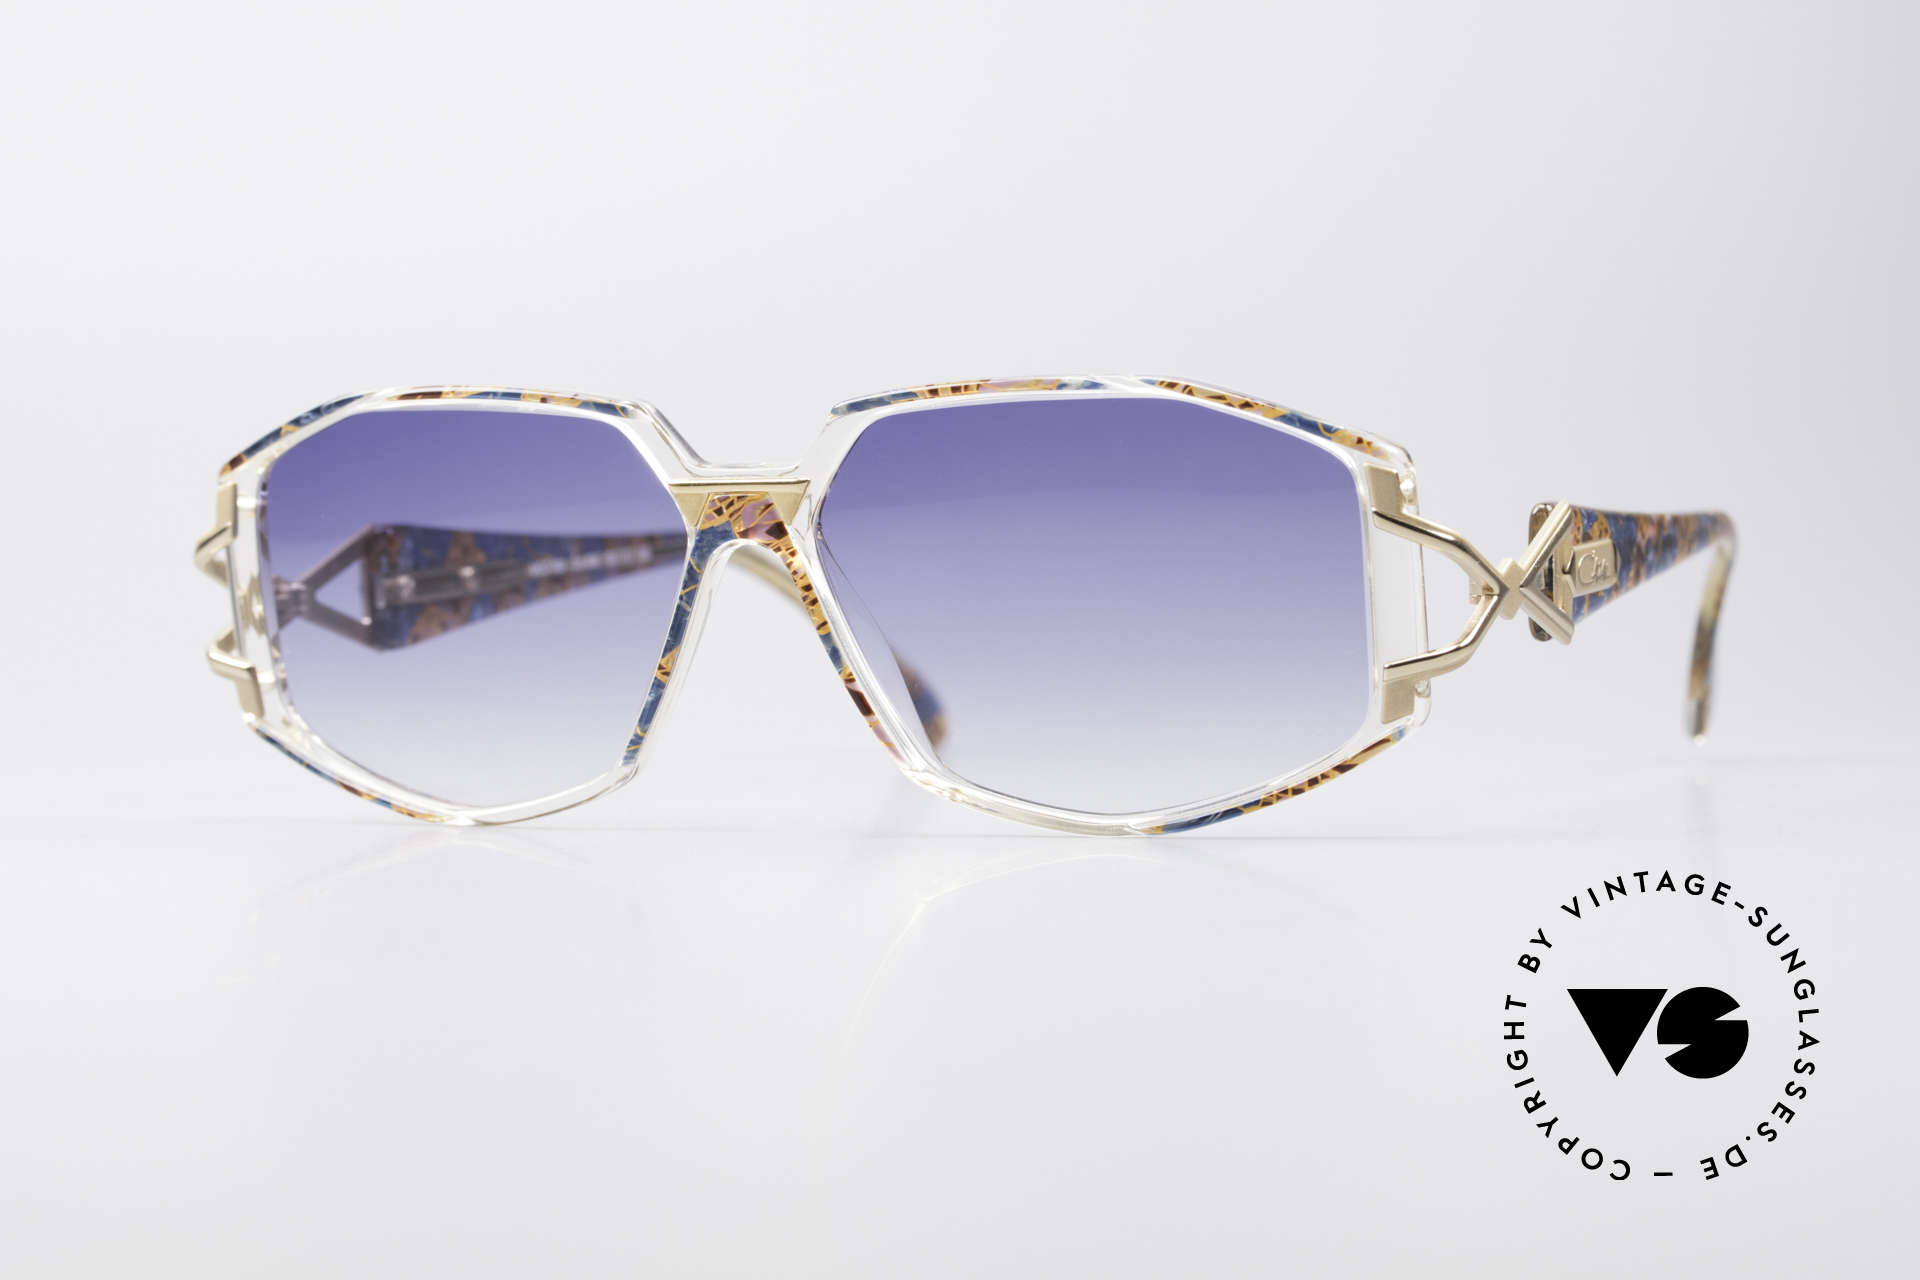 Cazal 368 90's Hip Hop Old School Shades, adorned CAZAL sunglasses from 1990's, Hip Hop Style, Made for Women